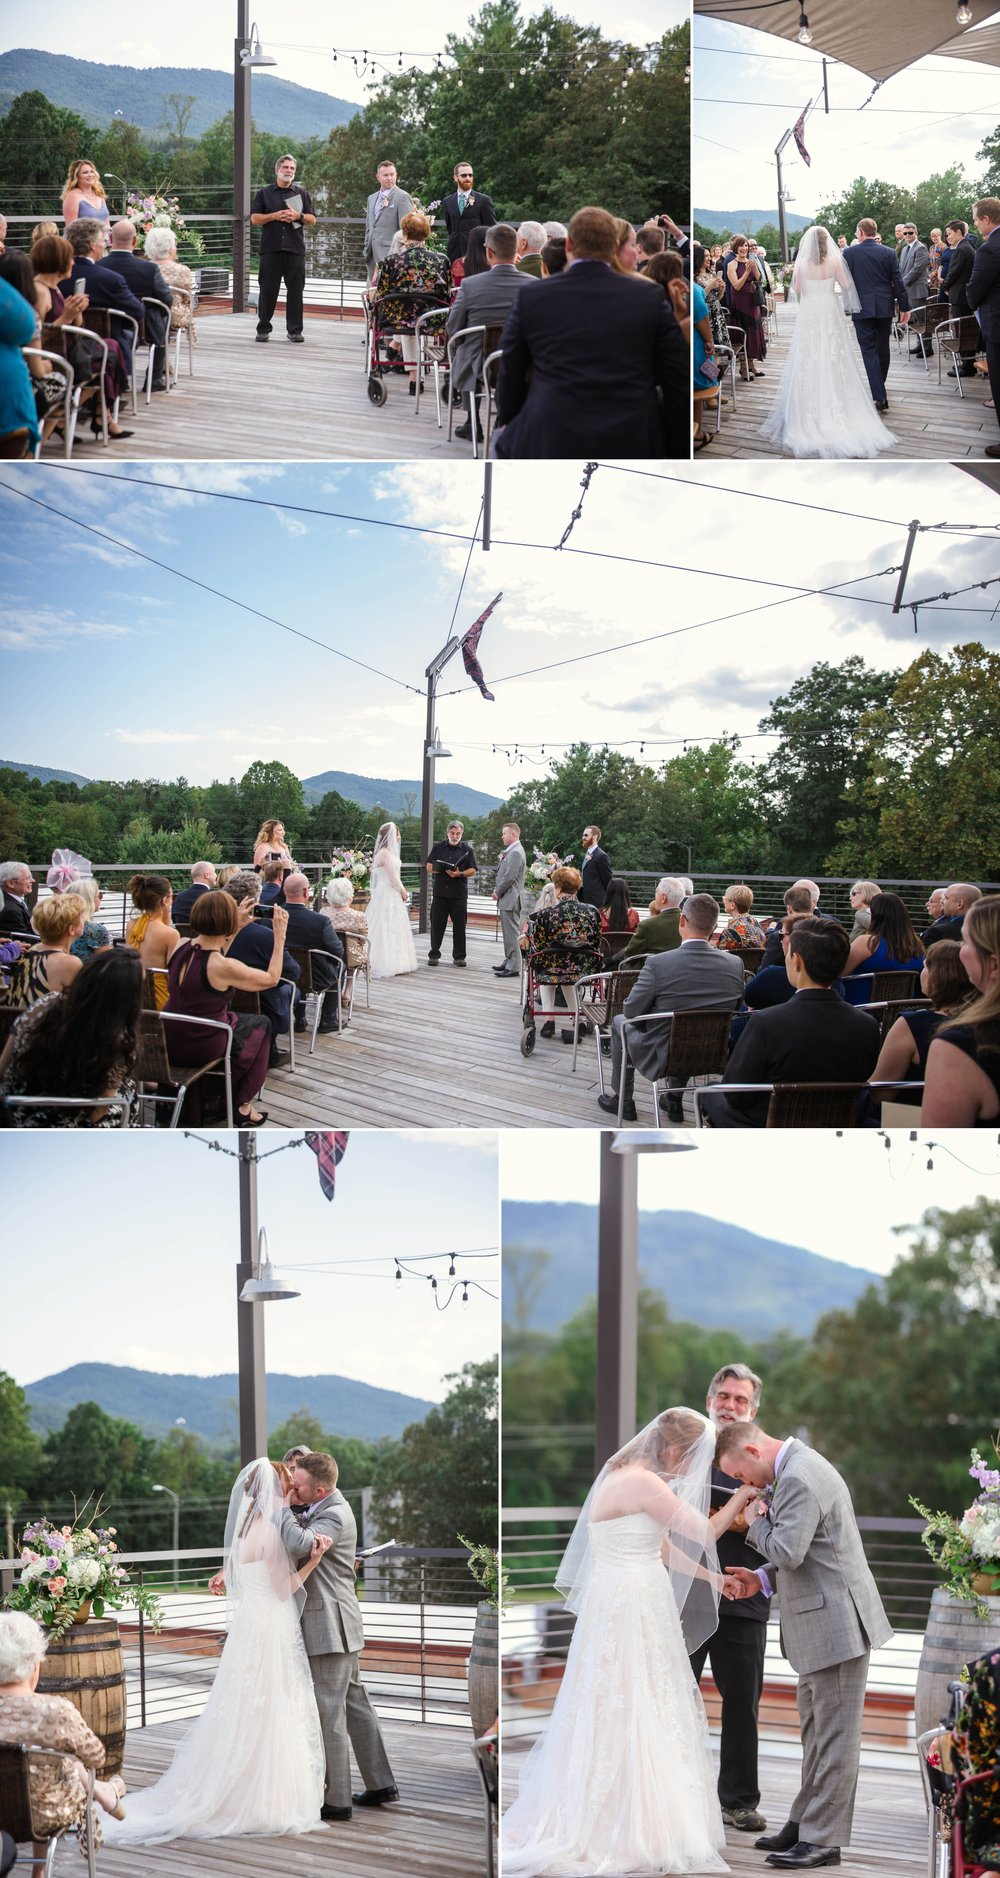 Wedding Photography at the Highland Brewing Company in Asheville North Carolina - Katie + Adam - Johanna Dye Photographer 12.jpg